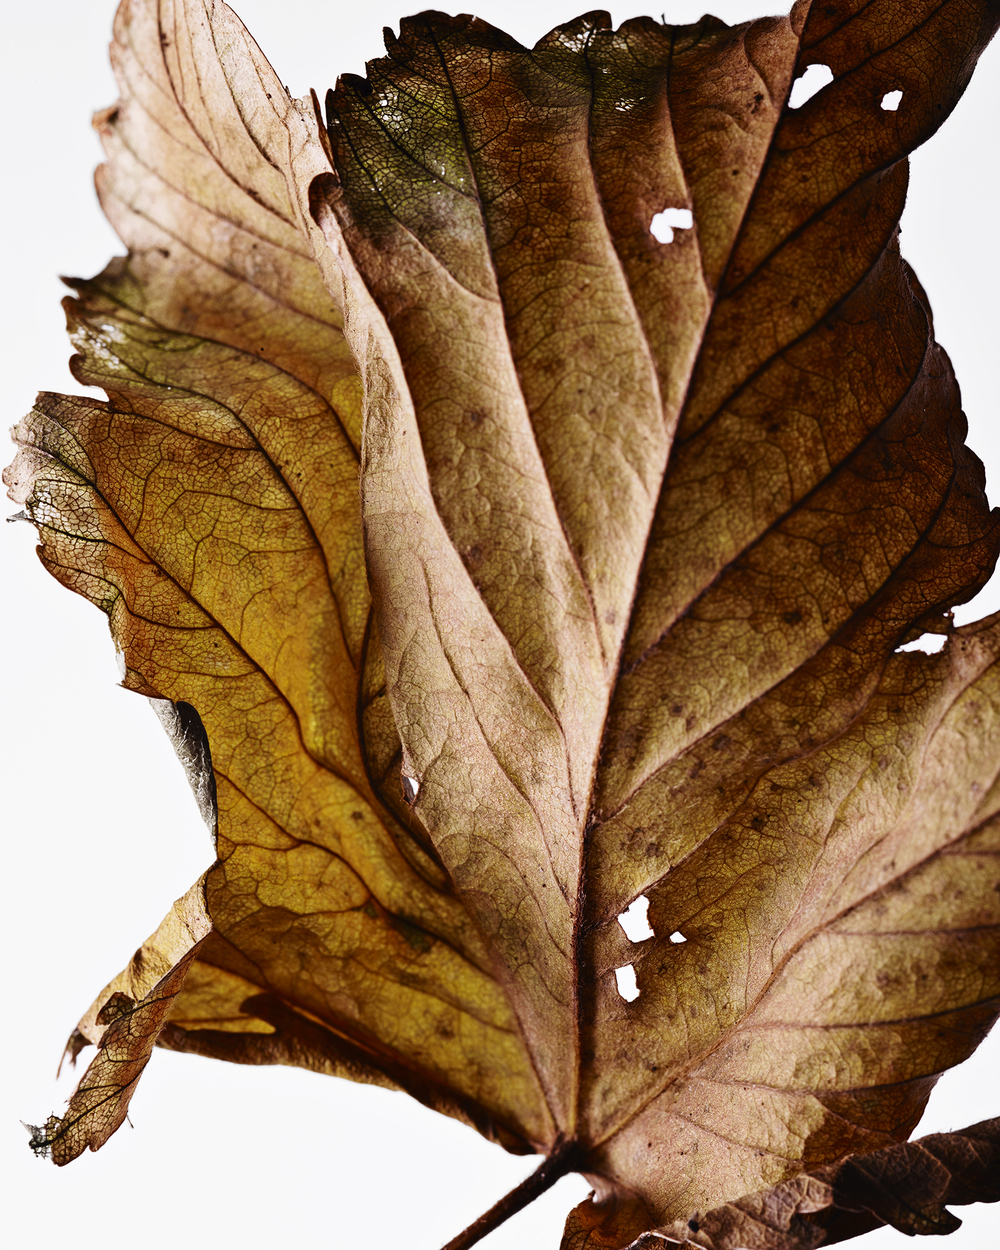 141219_LEAVES_RDH62670_WebReady.jpg